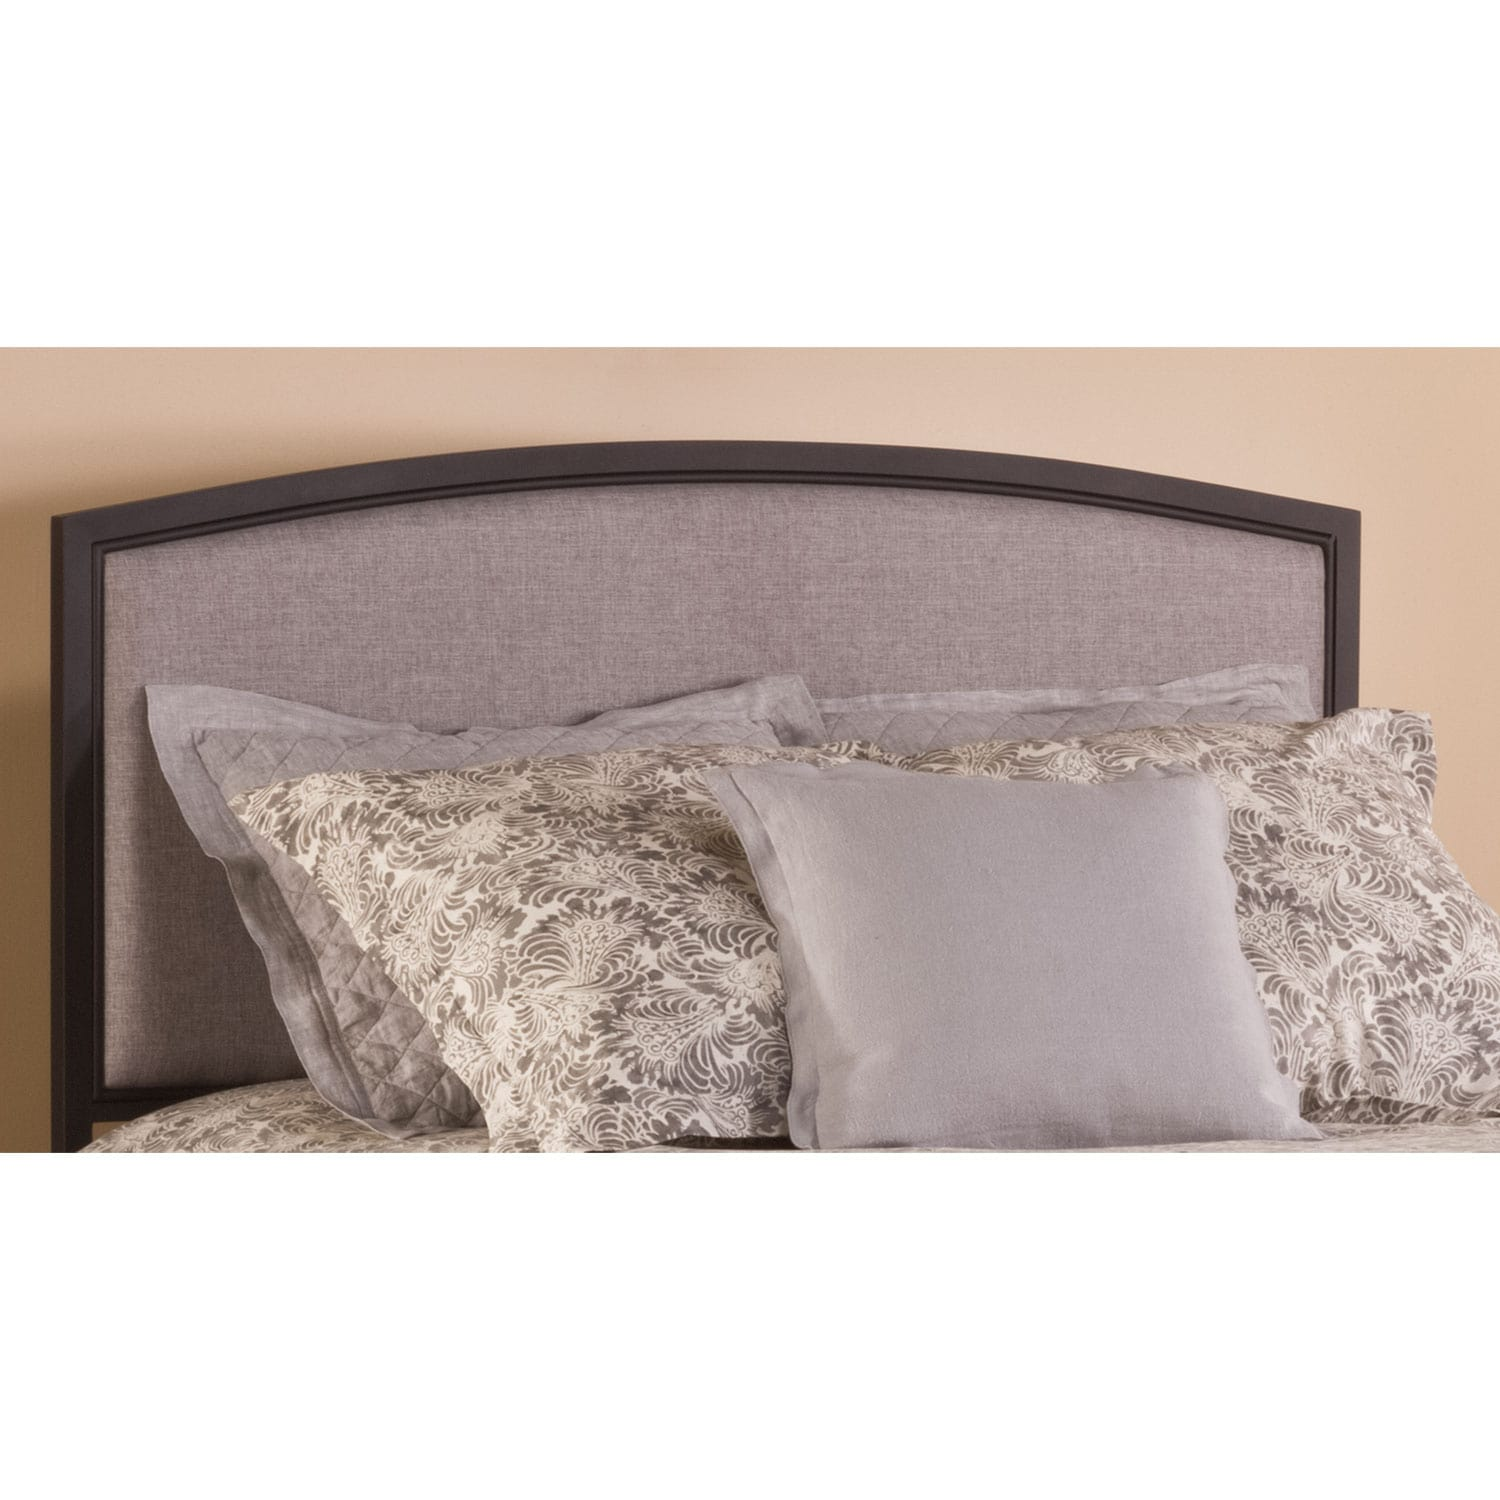 Bedroom Furniture - Bayside Full/Queen Headboard - Gray